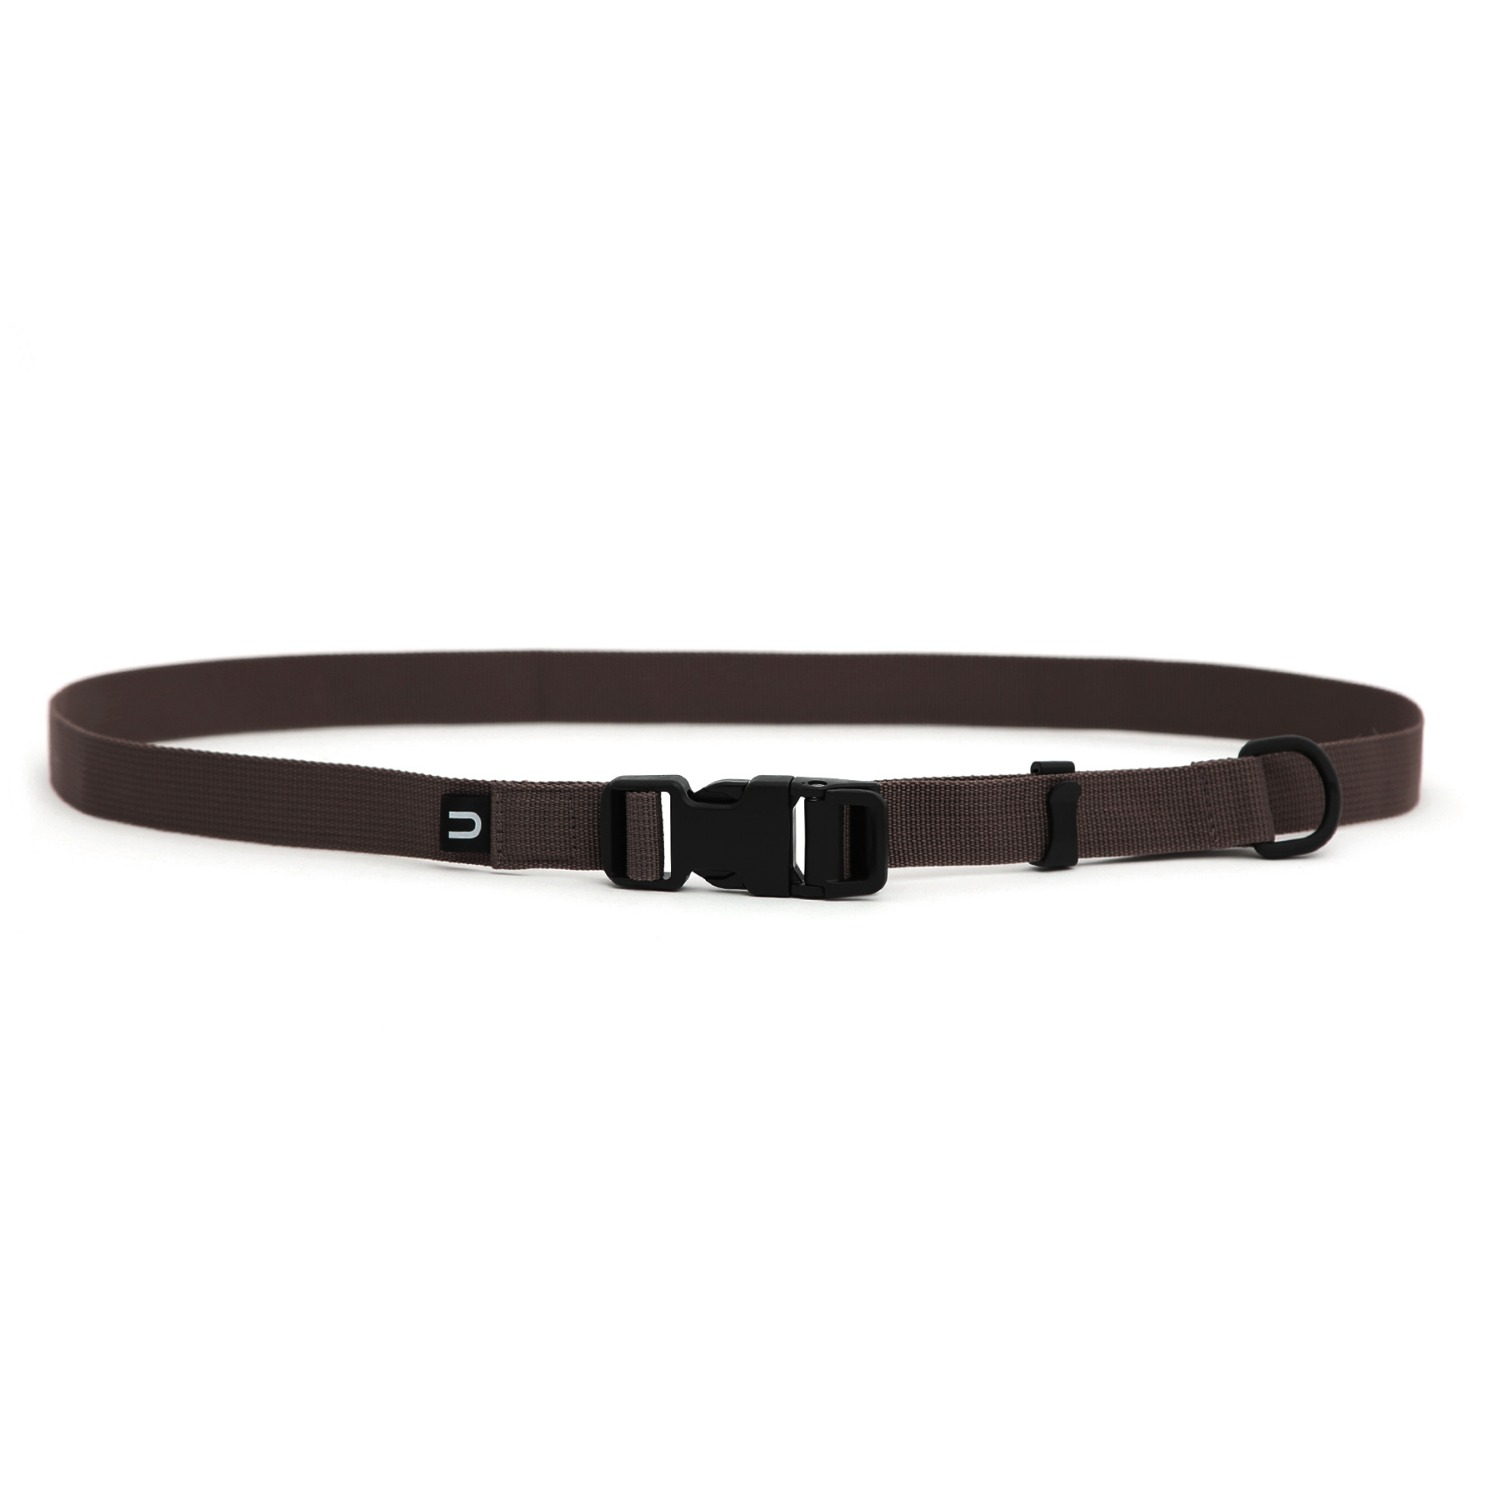 CAM BELT / D LOOP / BROWN